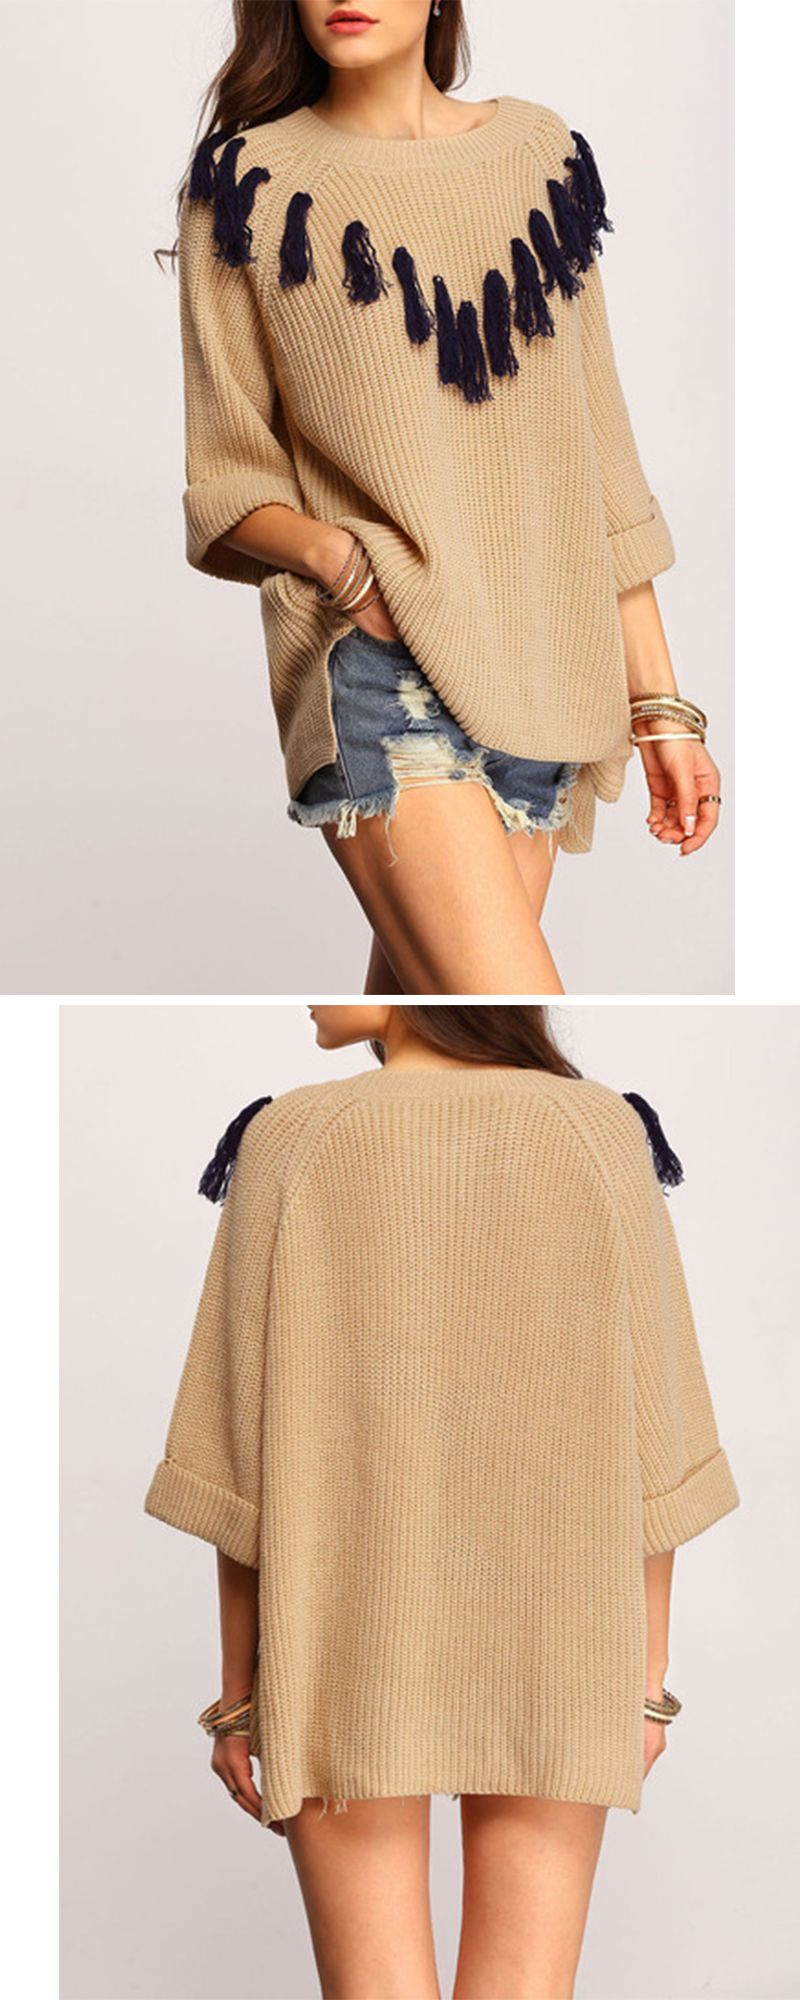 Perfect look for spring ! Love the accessories as well...Grey Crew Neck Contrast Fringe Sweater from shein.com